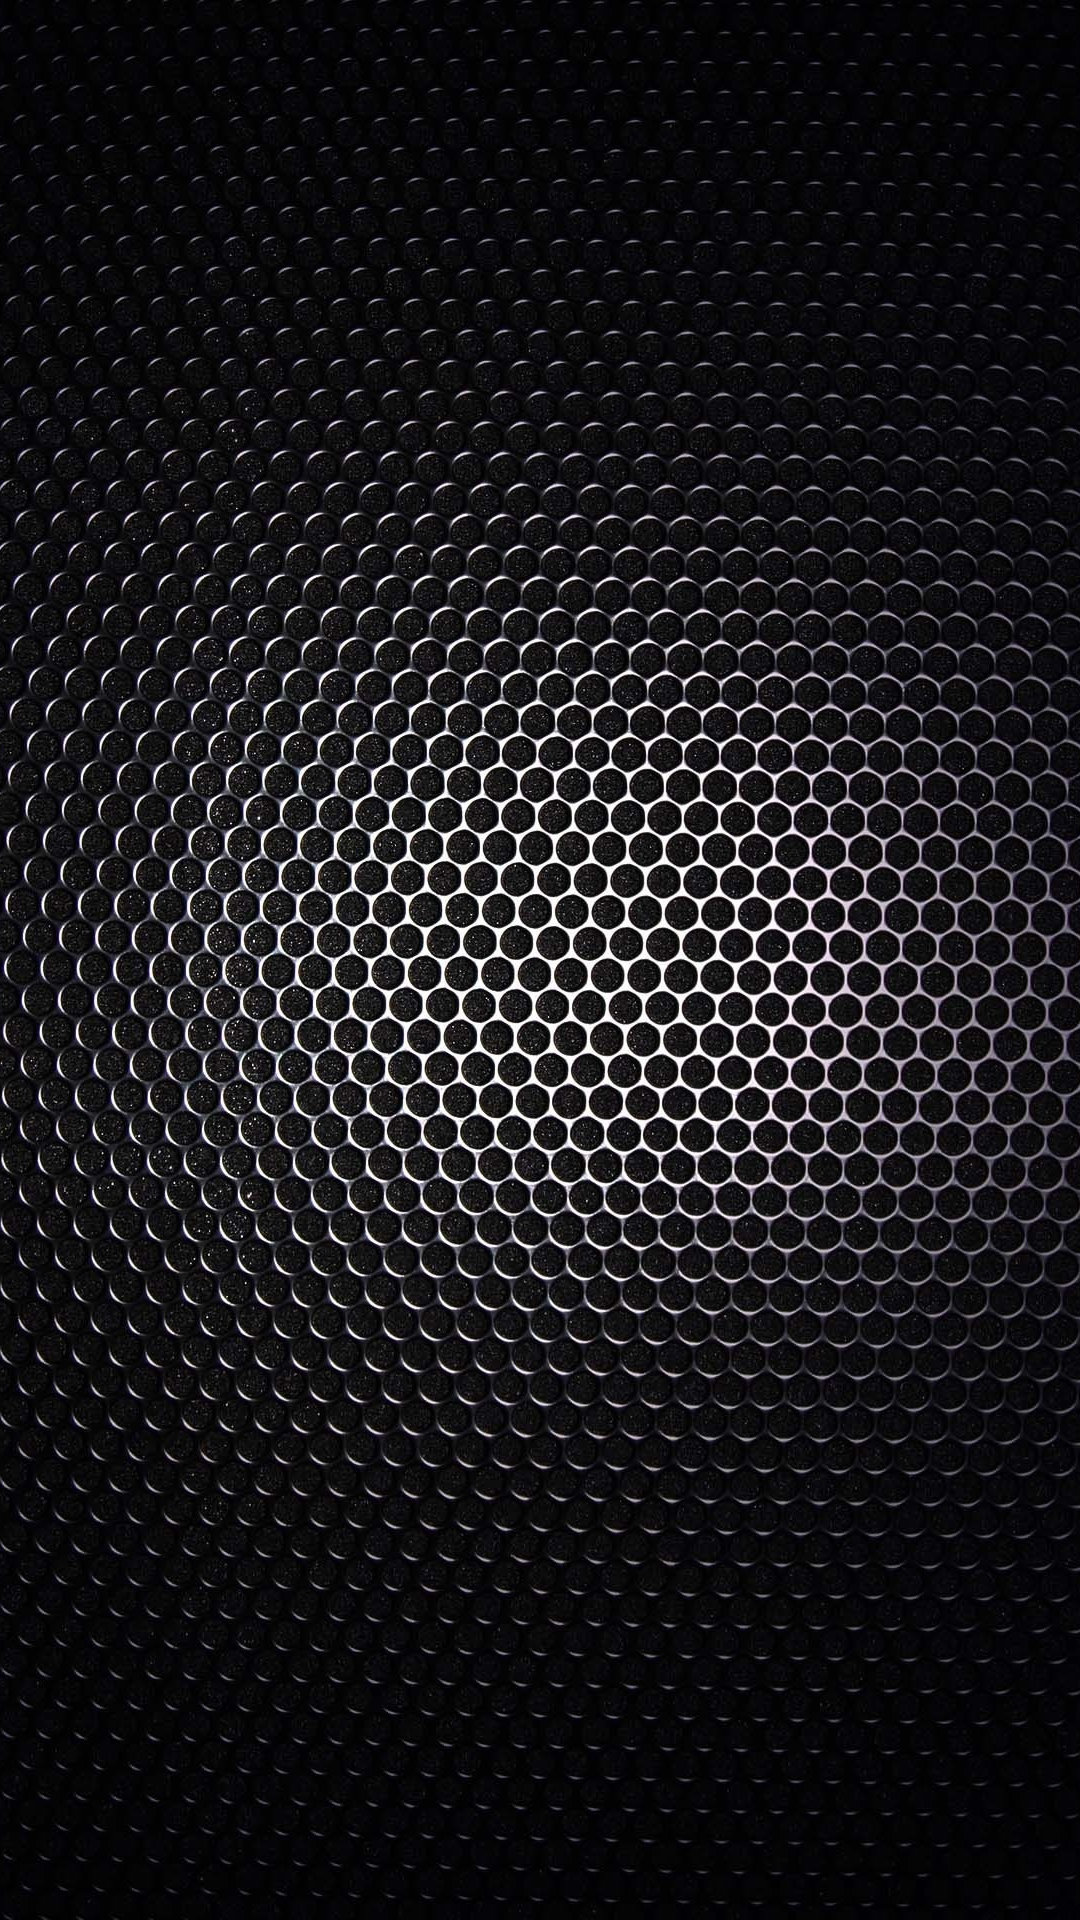 Wallpaper HD For Samsung S4